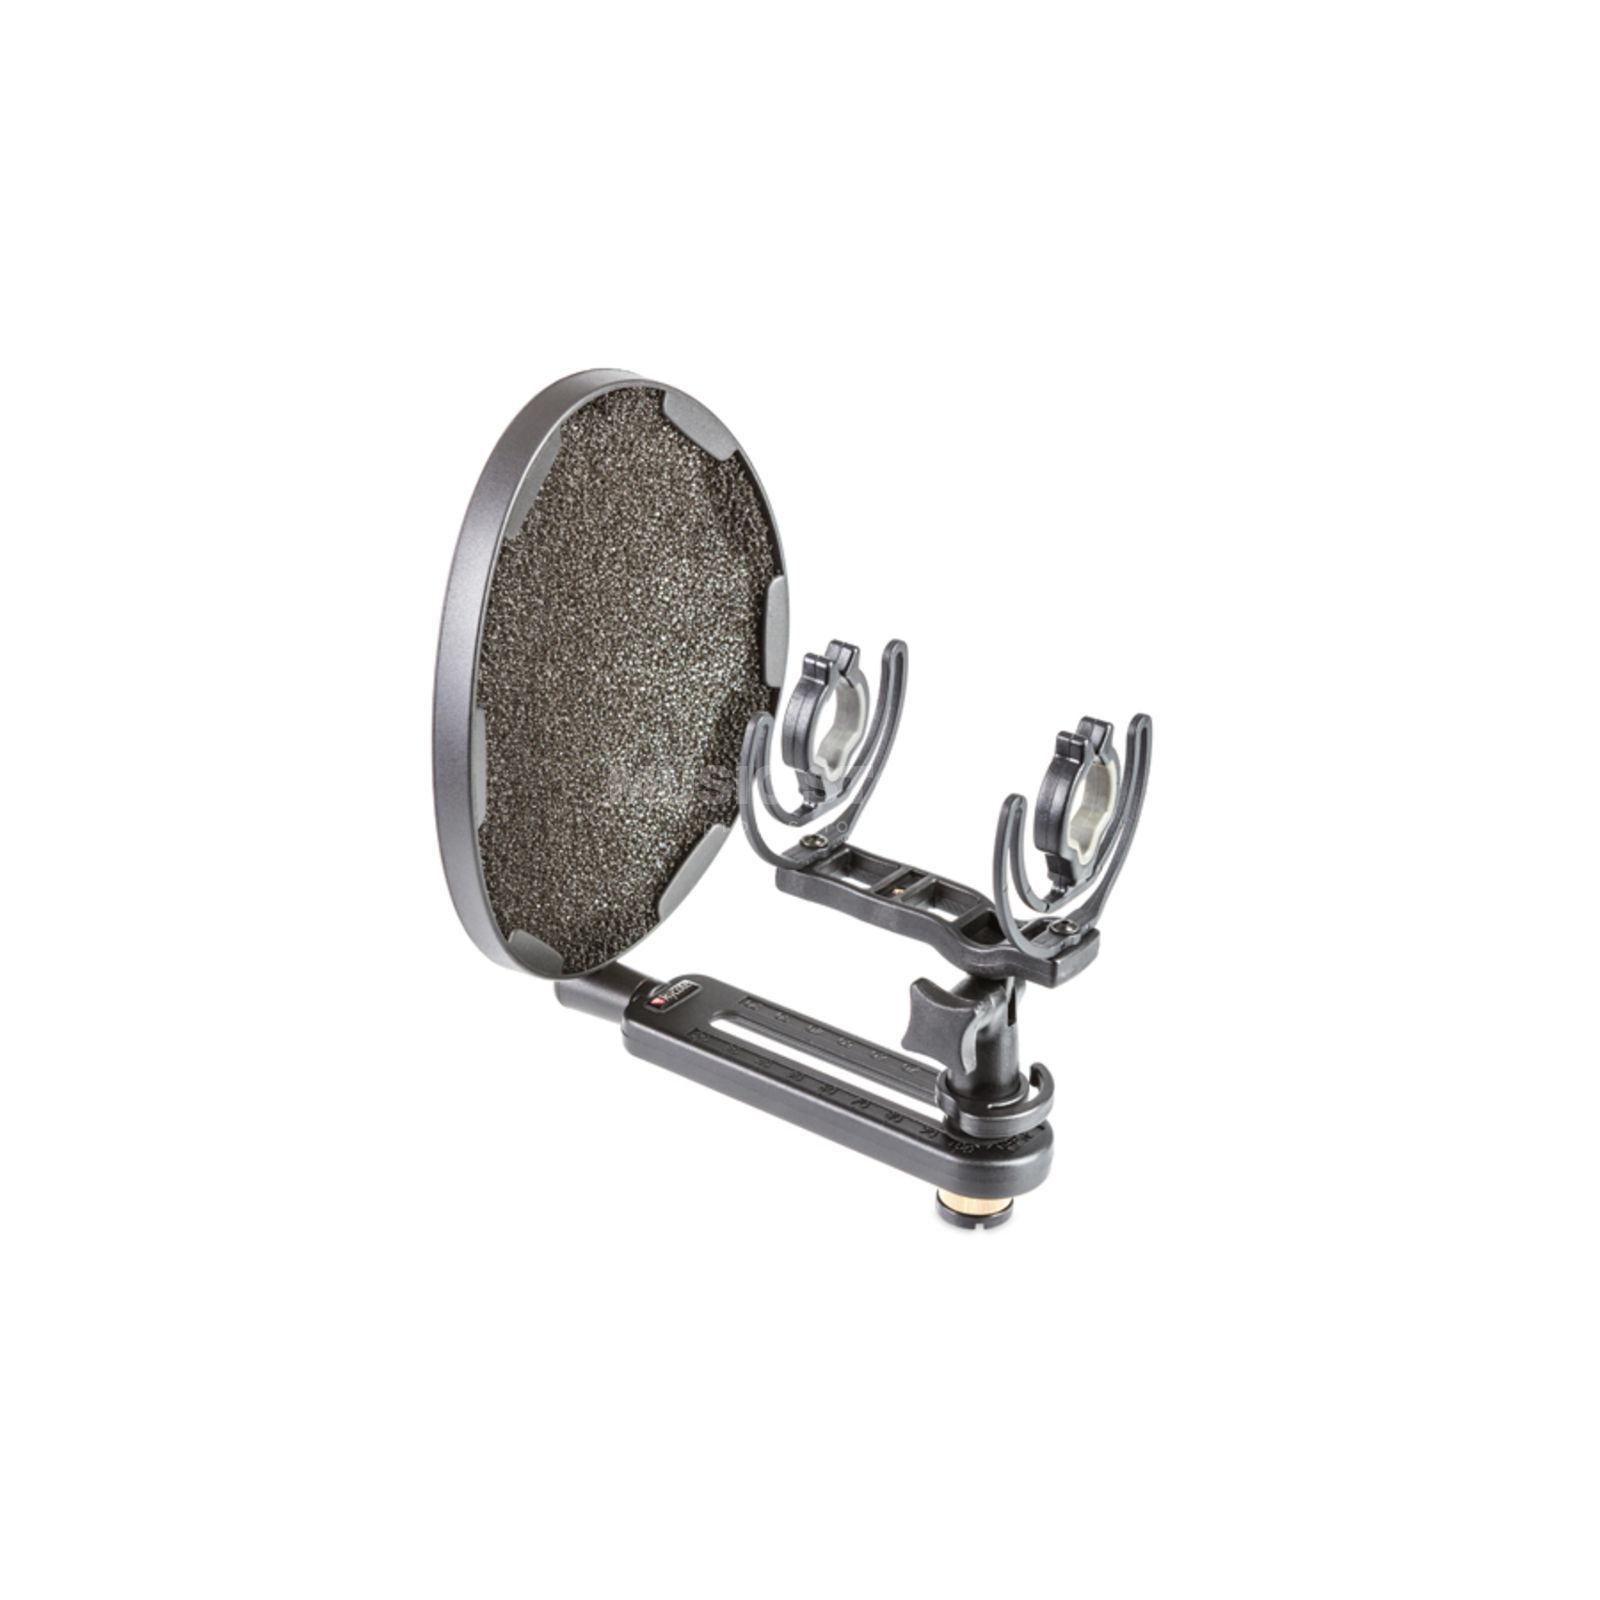 Rycote InVision INV-7 Pop Filter Kit Product Image